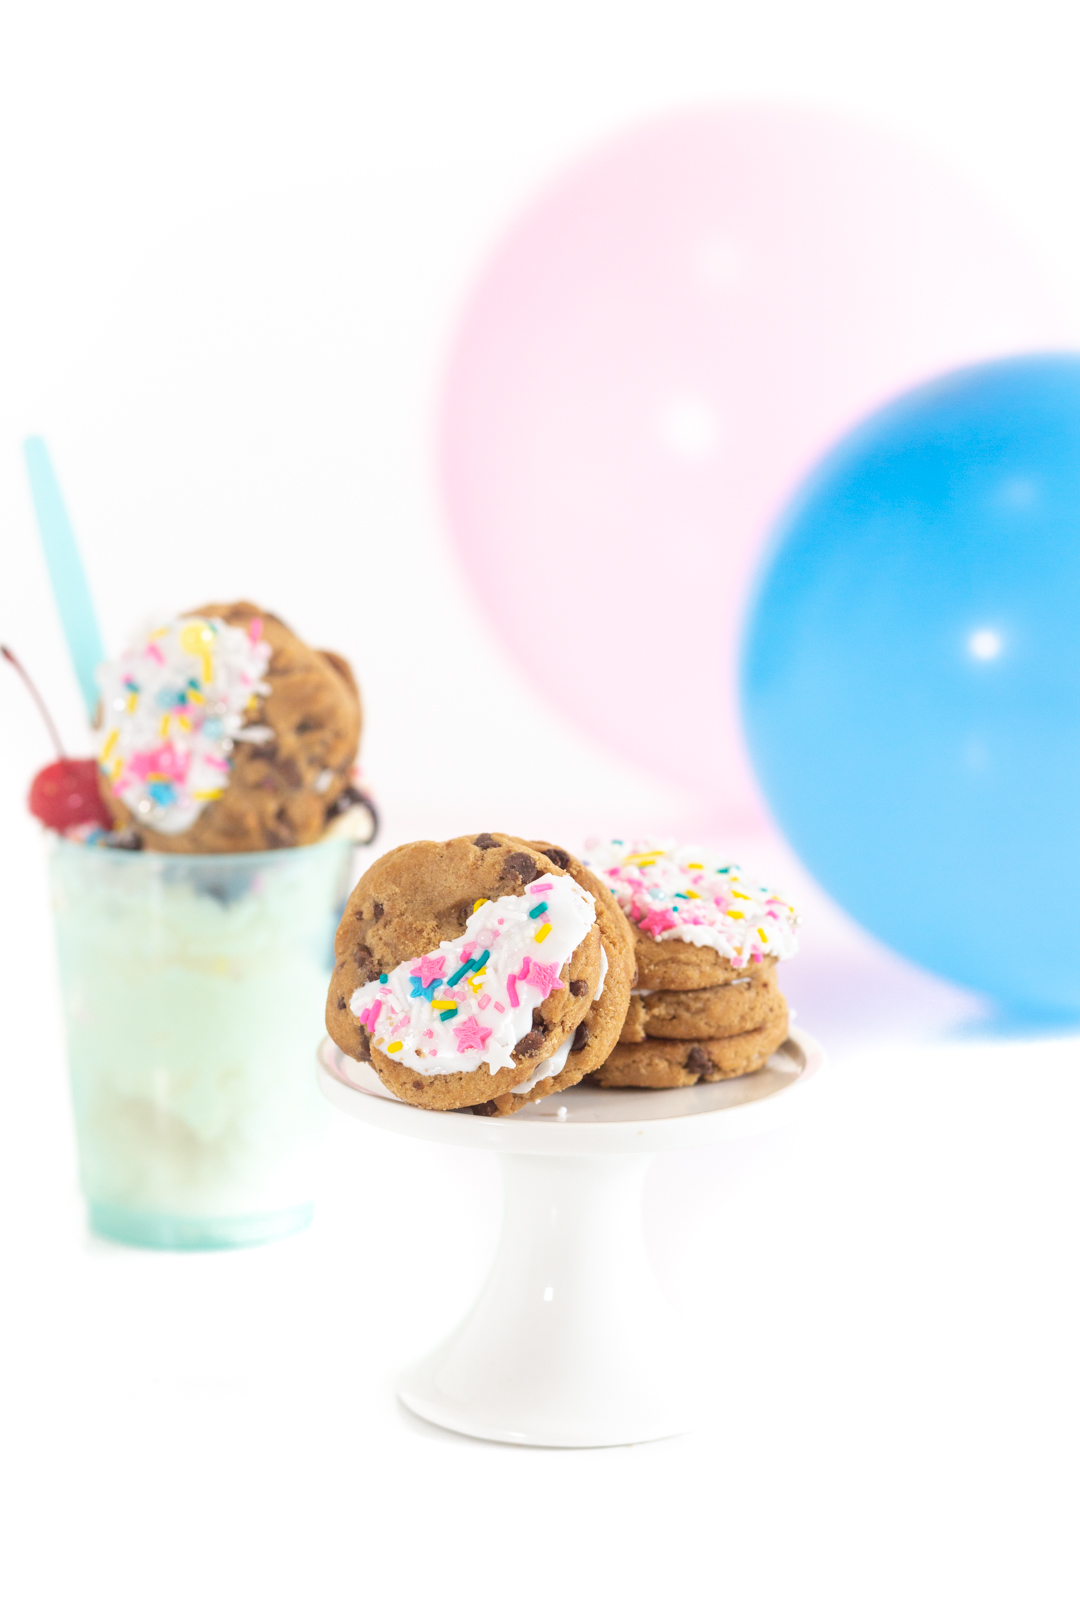 pinata cookies with sprinkles inside that are perfect for eating with ice cream sundaes